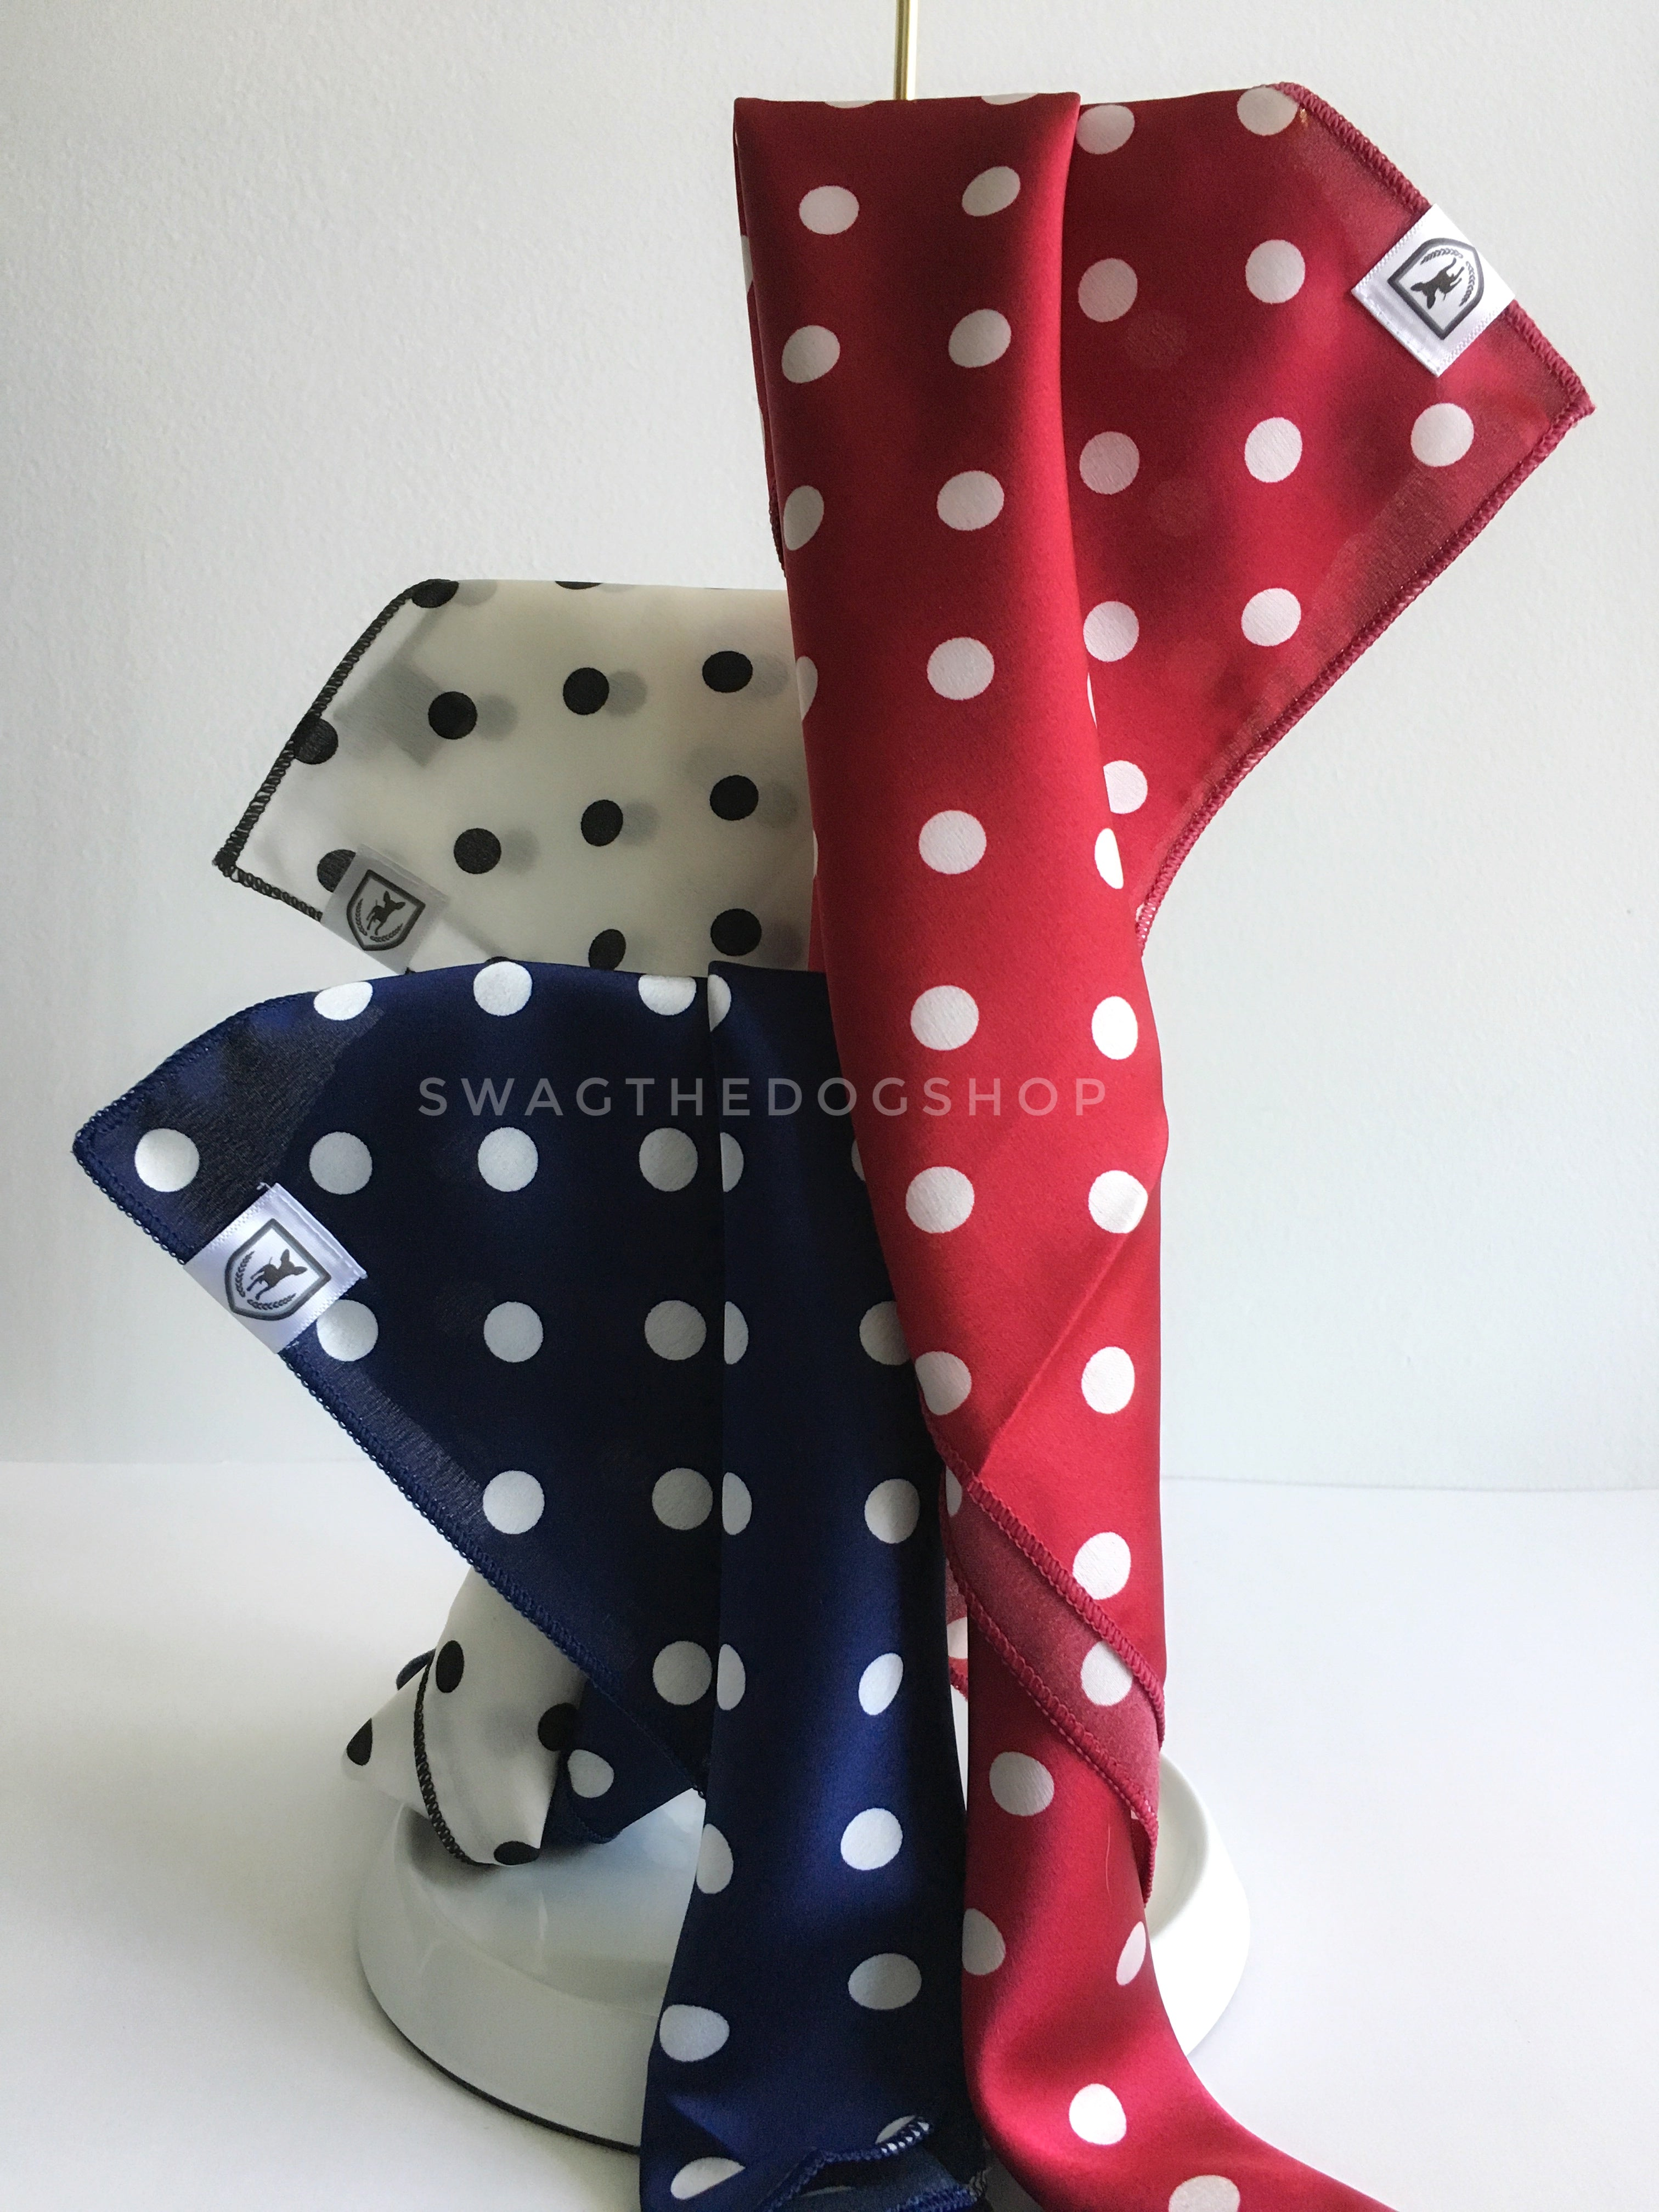 Take an advantage of 3 for $30 deal. 3 Polka Dot Theme Swagdana Scarves displayed. 1-Polka Dot White. 2-Polka Dot Navy. 3-Polka Dot Burgundy. Dog Bandana. Dog Scarf